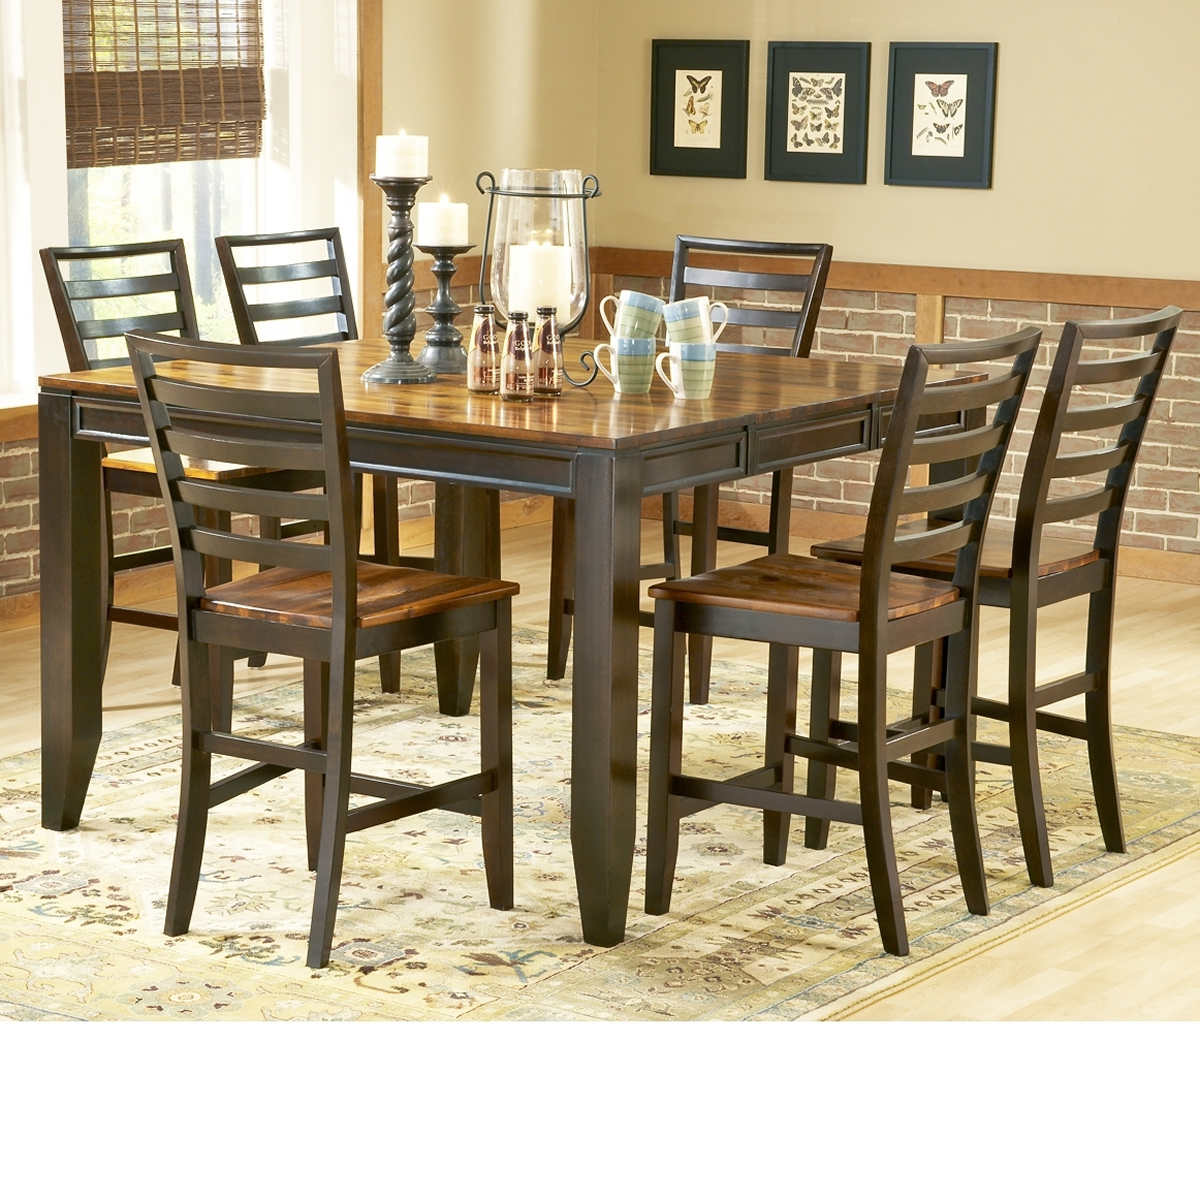 7 piece counter height dining set harrison brown